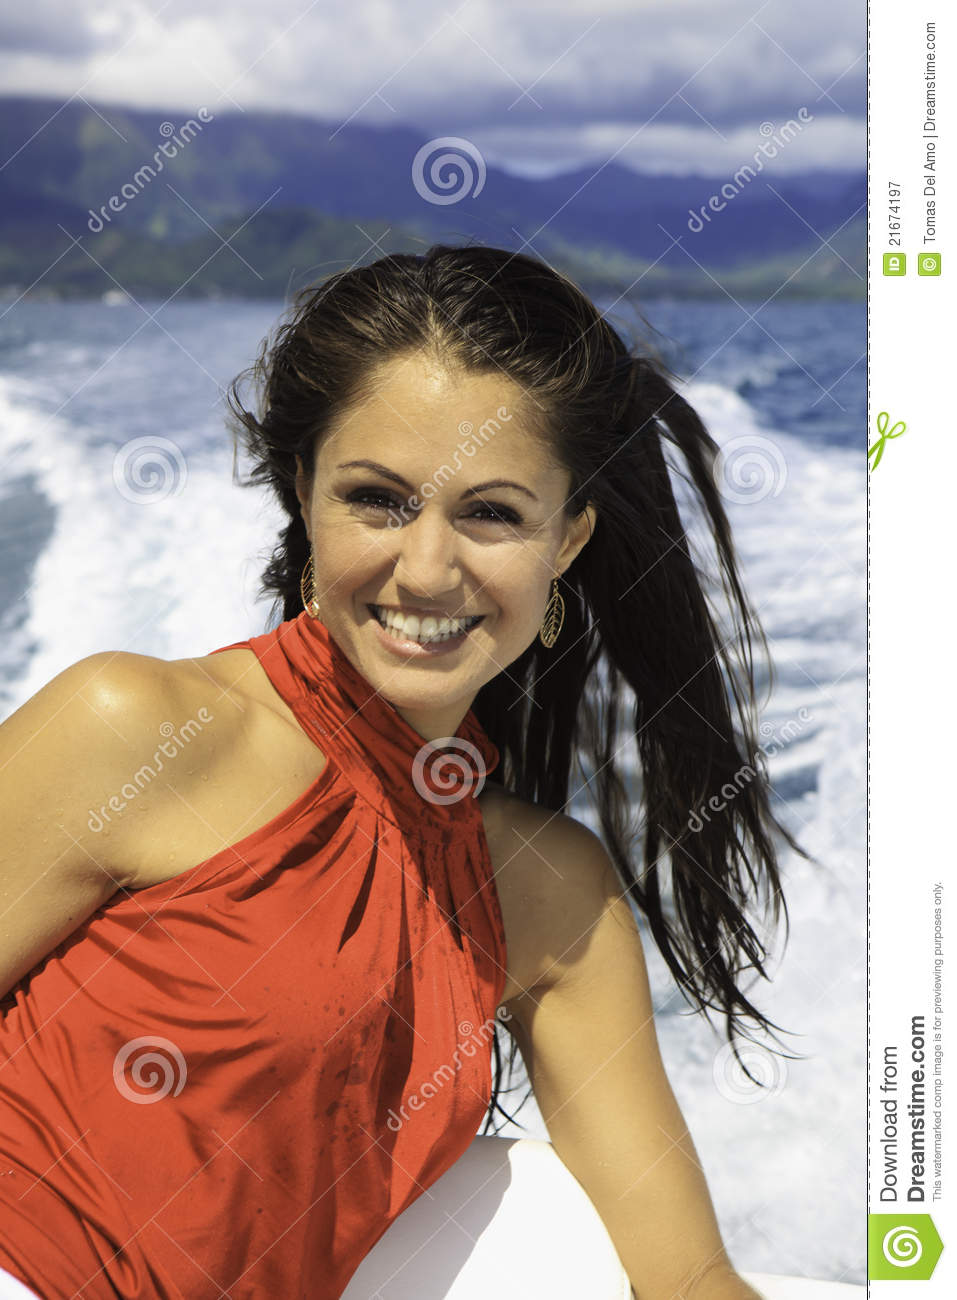 Beautiful Woman On A Boat Royalty Free Stock Photography - Image: 21674197